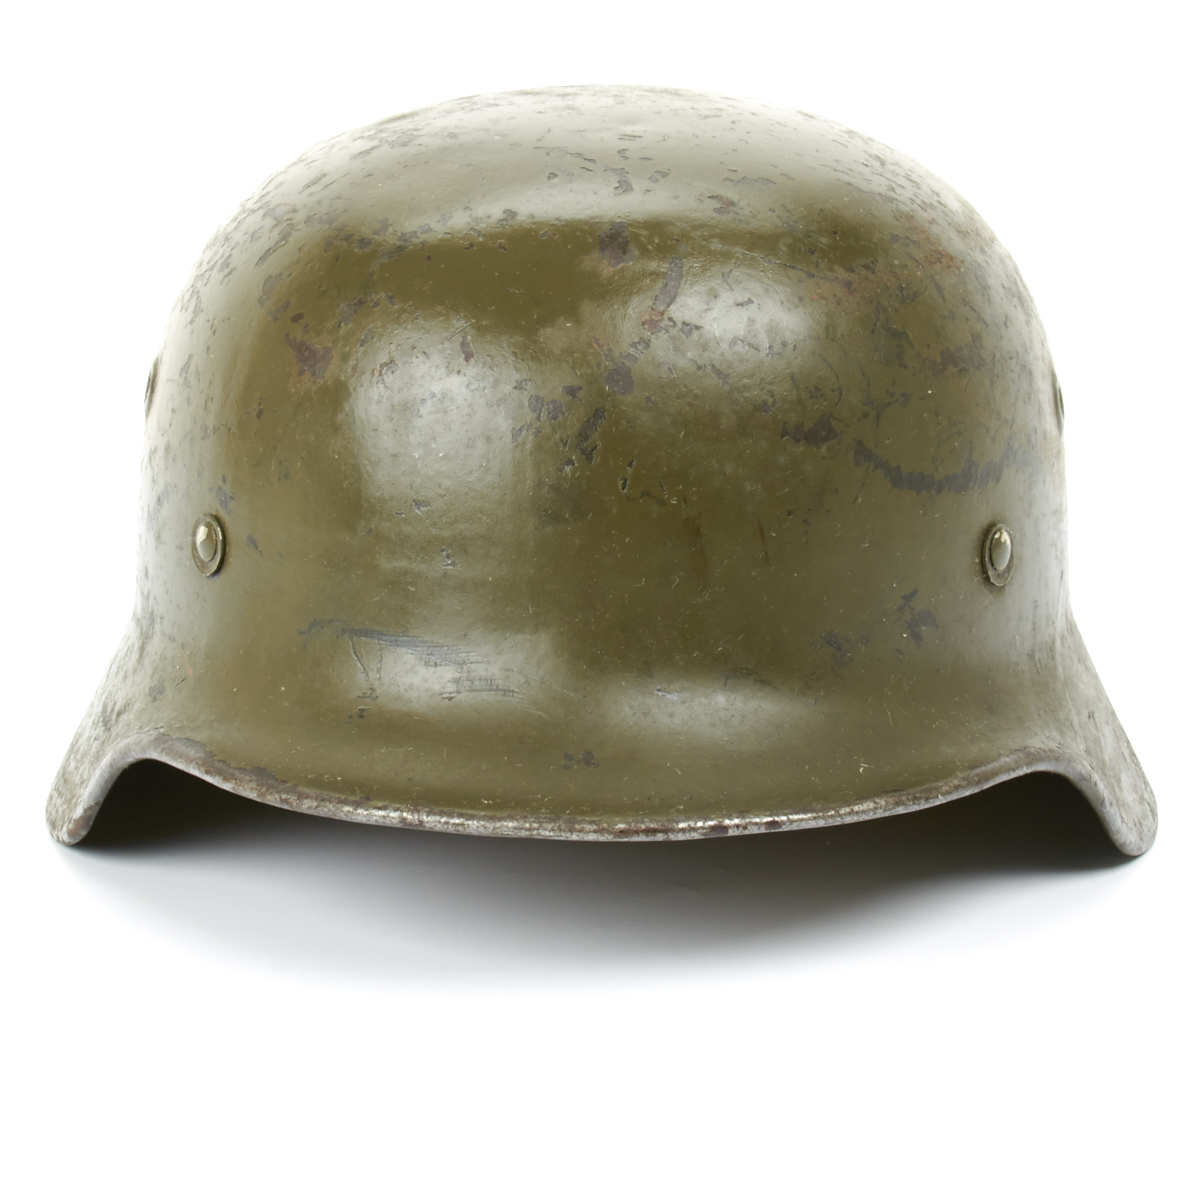 Strahlhelm Details About Original German Wwii M40 Stahlhelm Steel Helmet Shell Size 68 Maker Marked